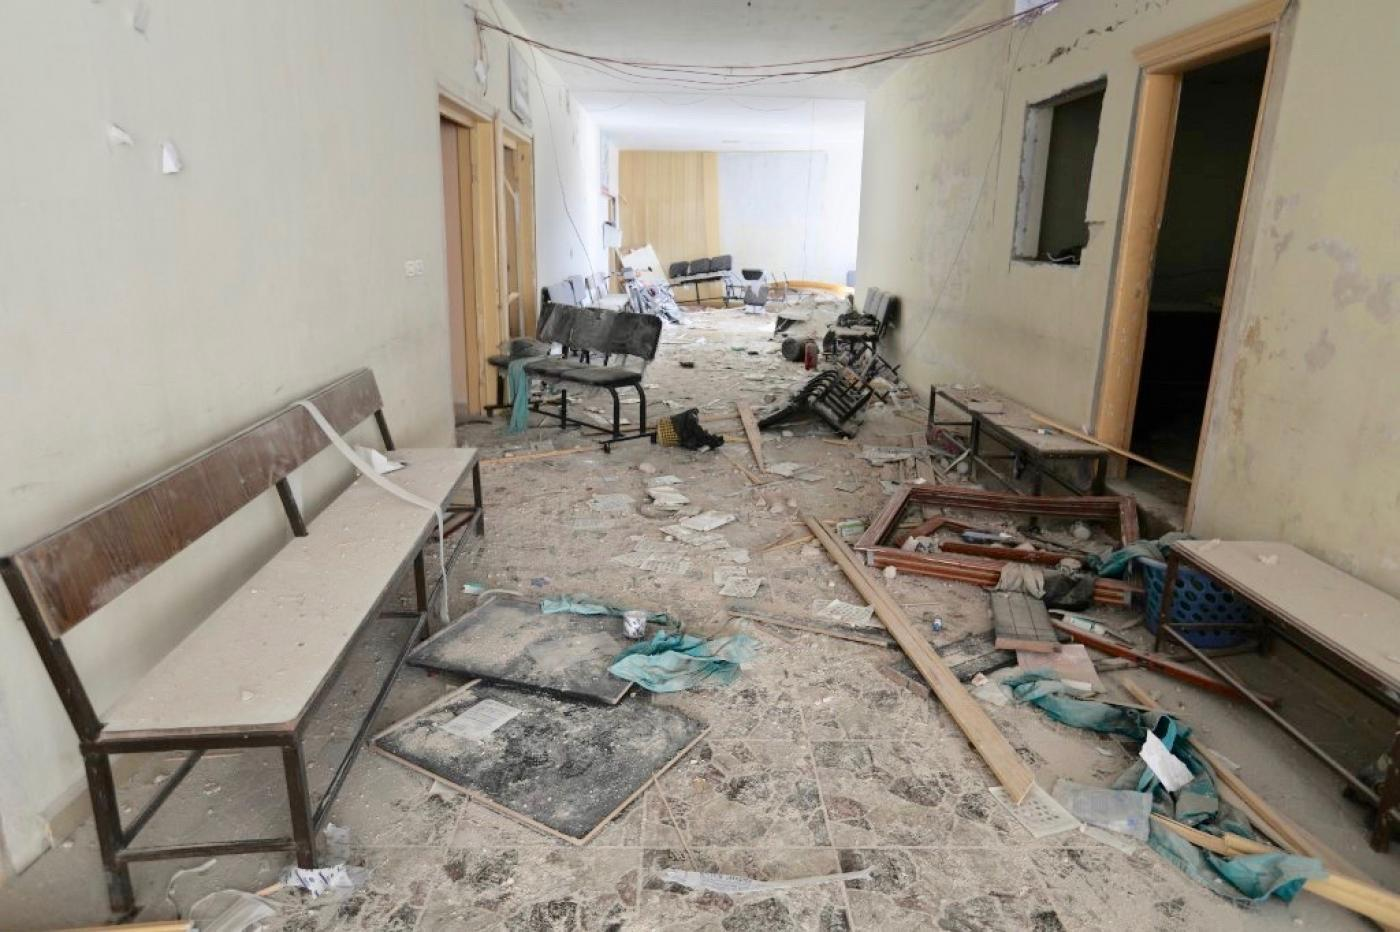 Russian airstrikes on Kafr Nabl's Surgical Hospital in Syria, early May 2019, Agence France-Presse